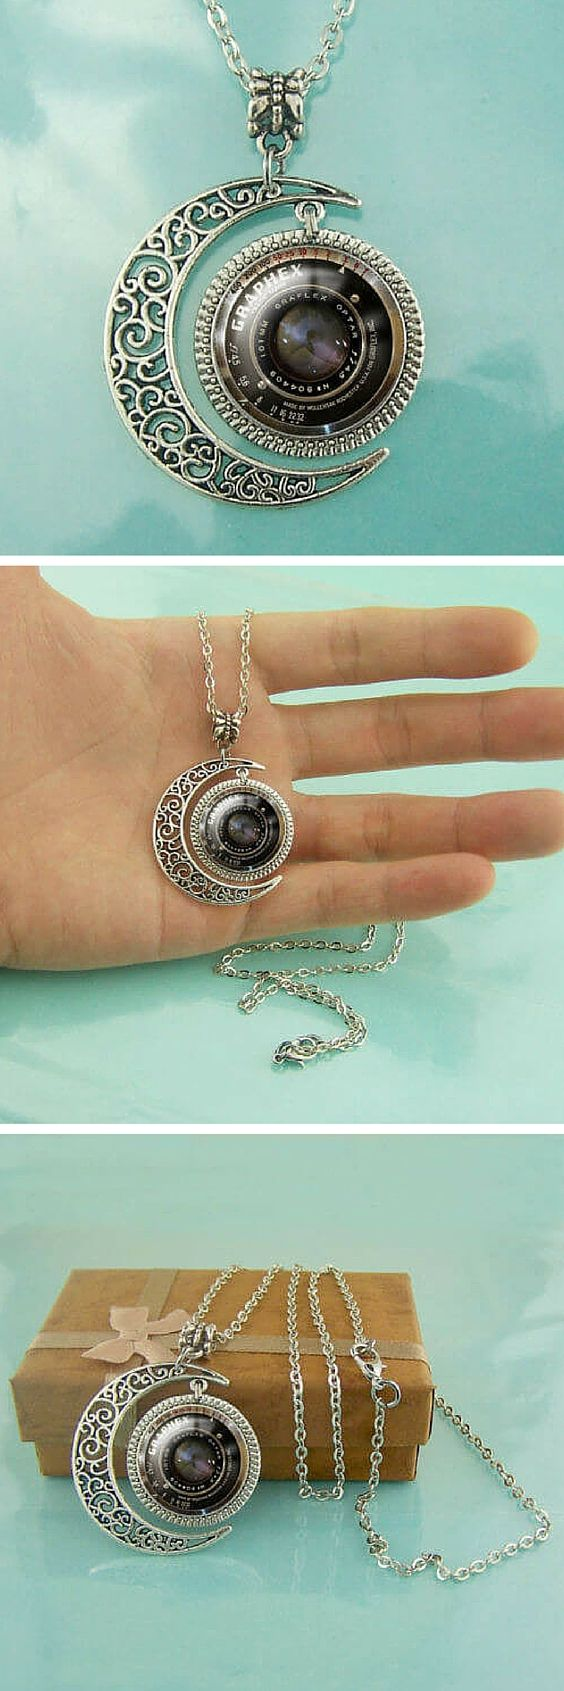 Love Photography? Then this is Photography necklace is for you. Get yours now at 50% off! Today only!